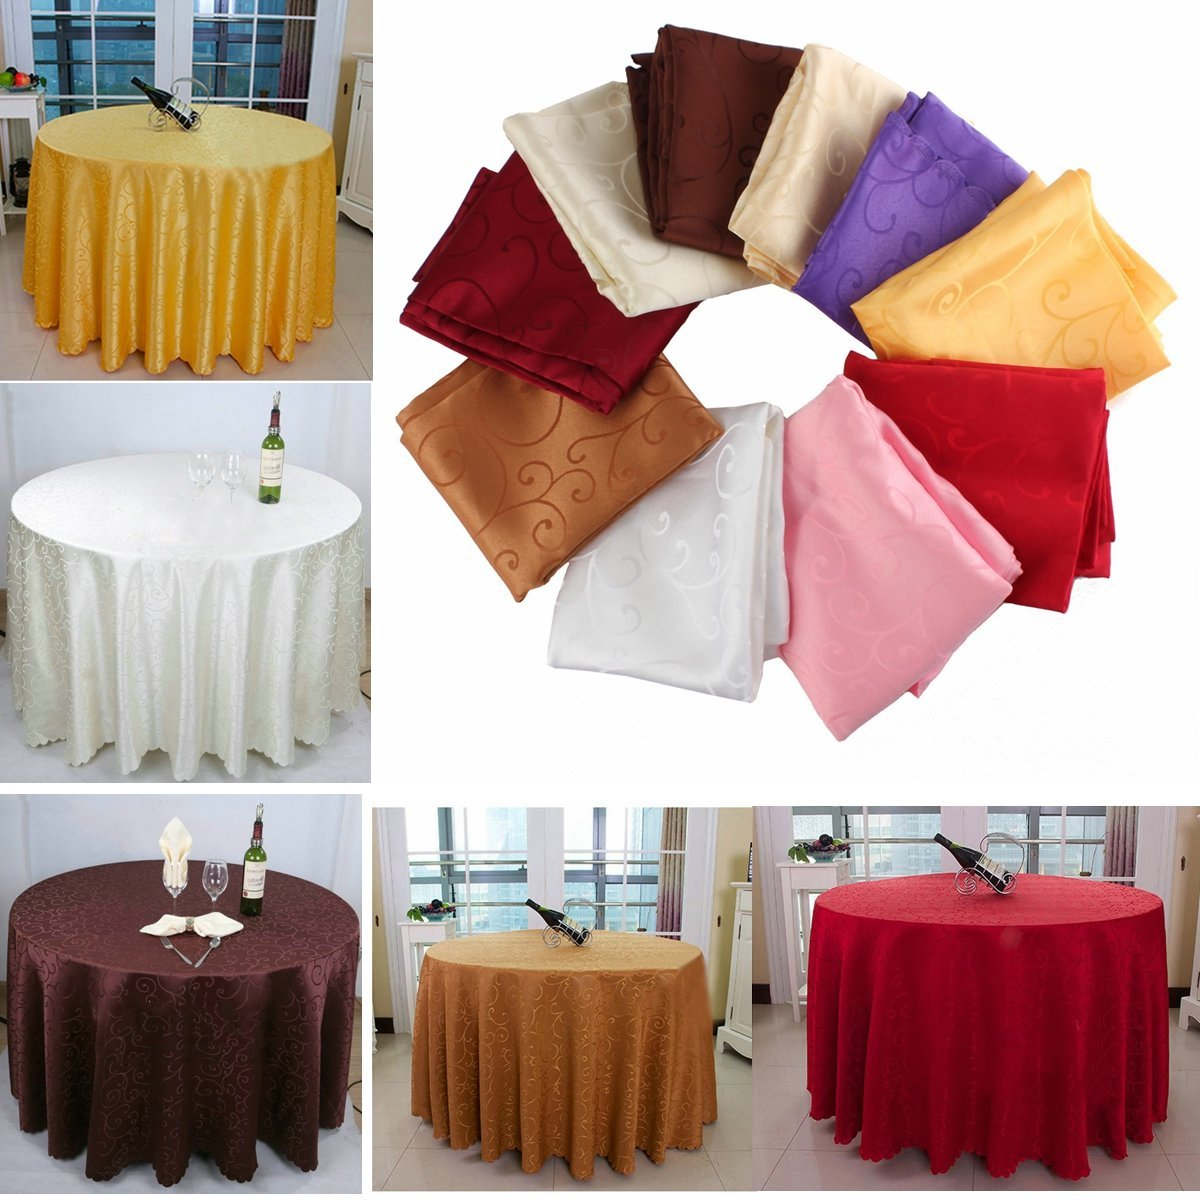 Bazaar 180cm Polyester Absorbent Round Tablecloth For Hotel Restaurant Wedding Decor